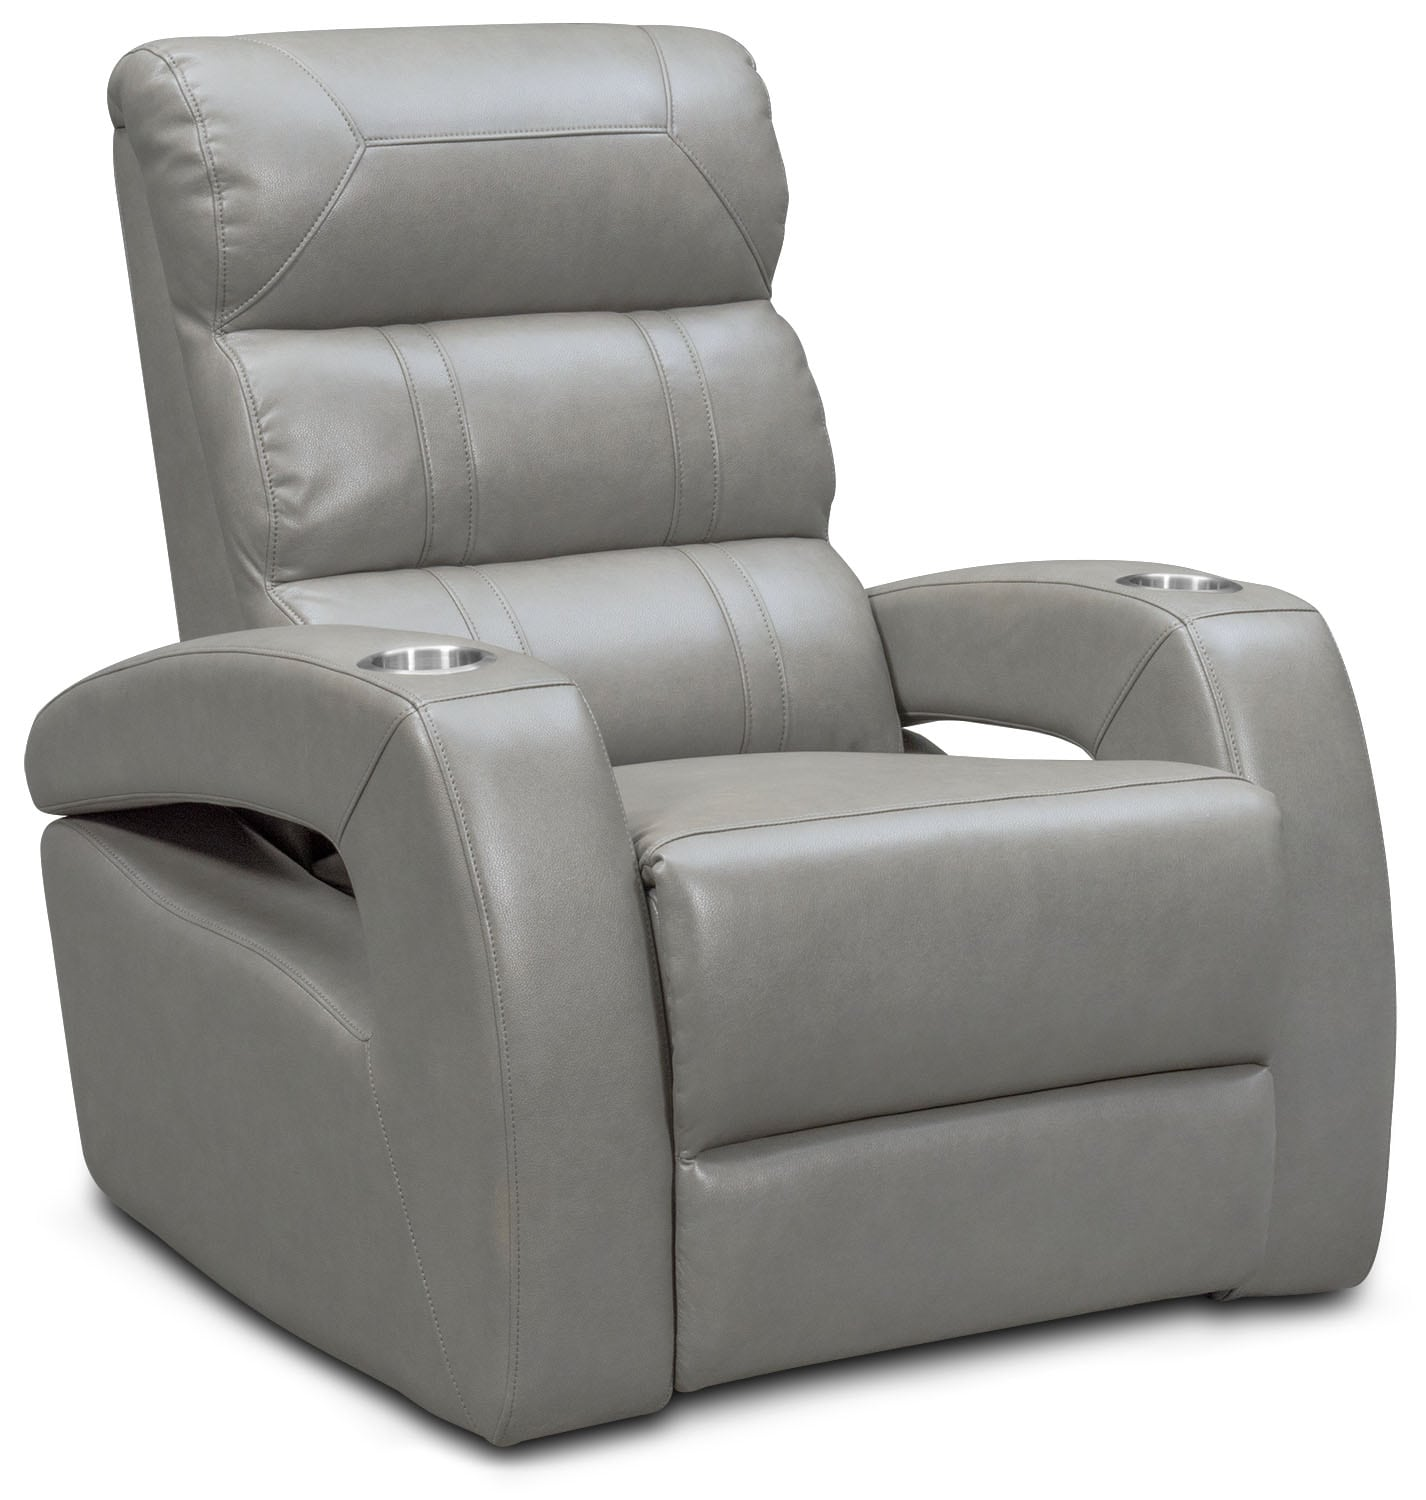 Bravo Power Recliner - Gray